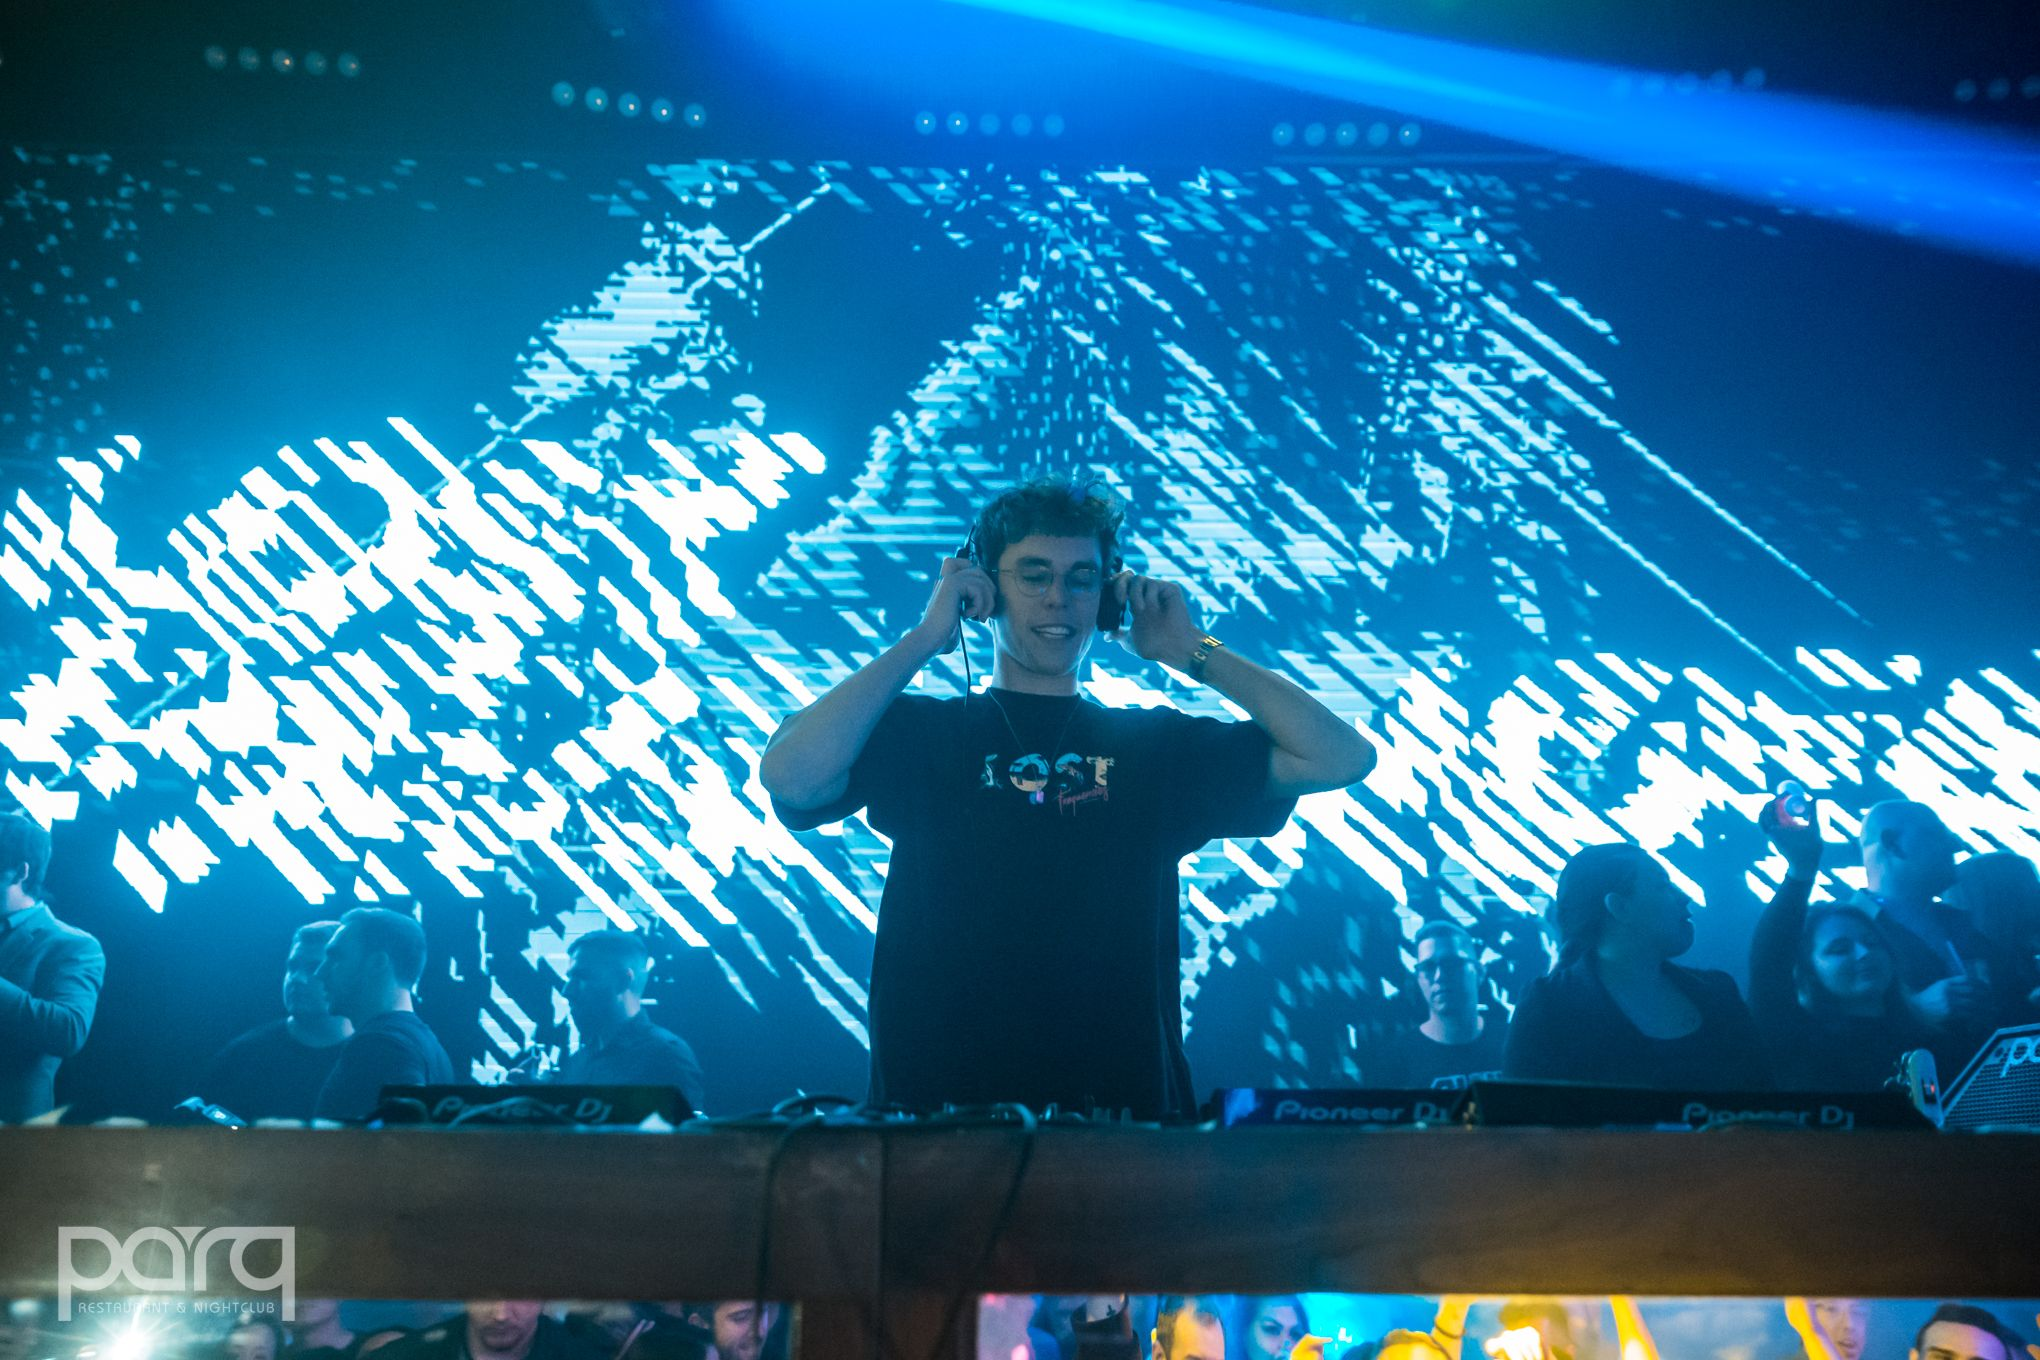 02.23.19 Parq - Lost Frequencies-25.jpg